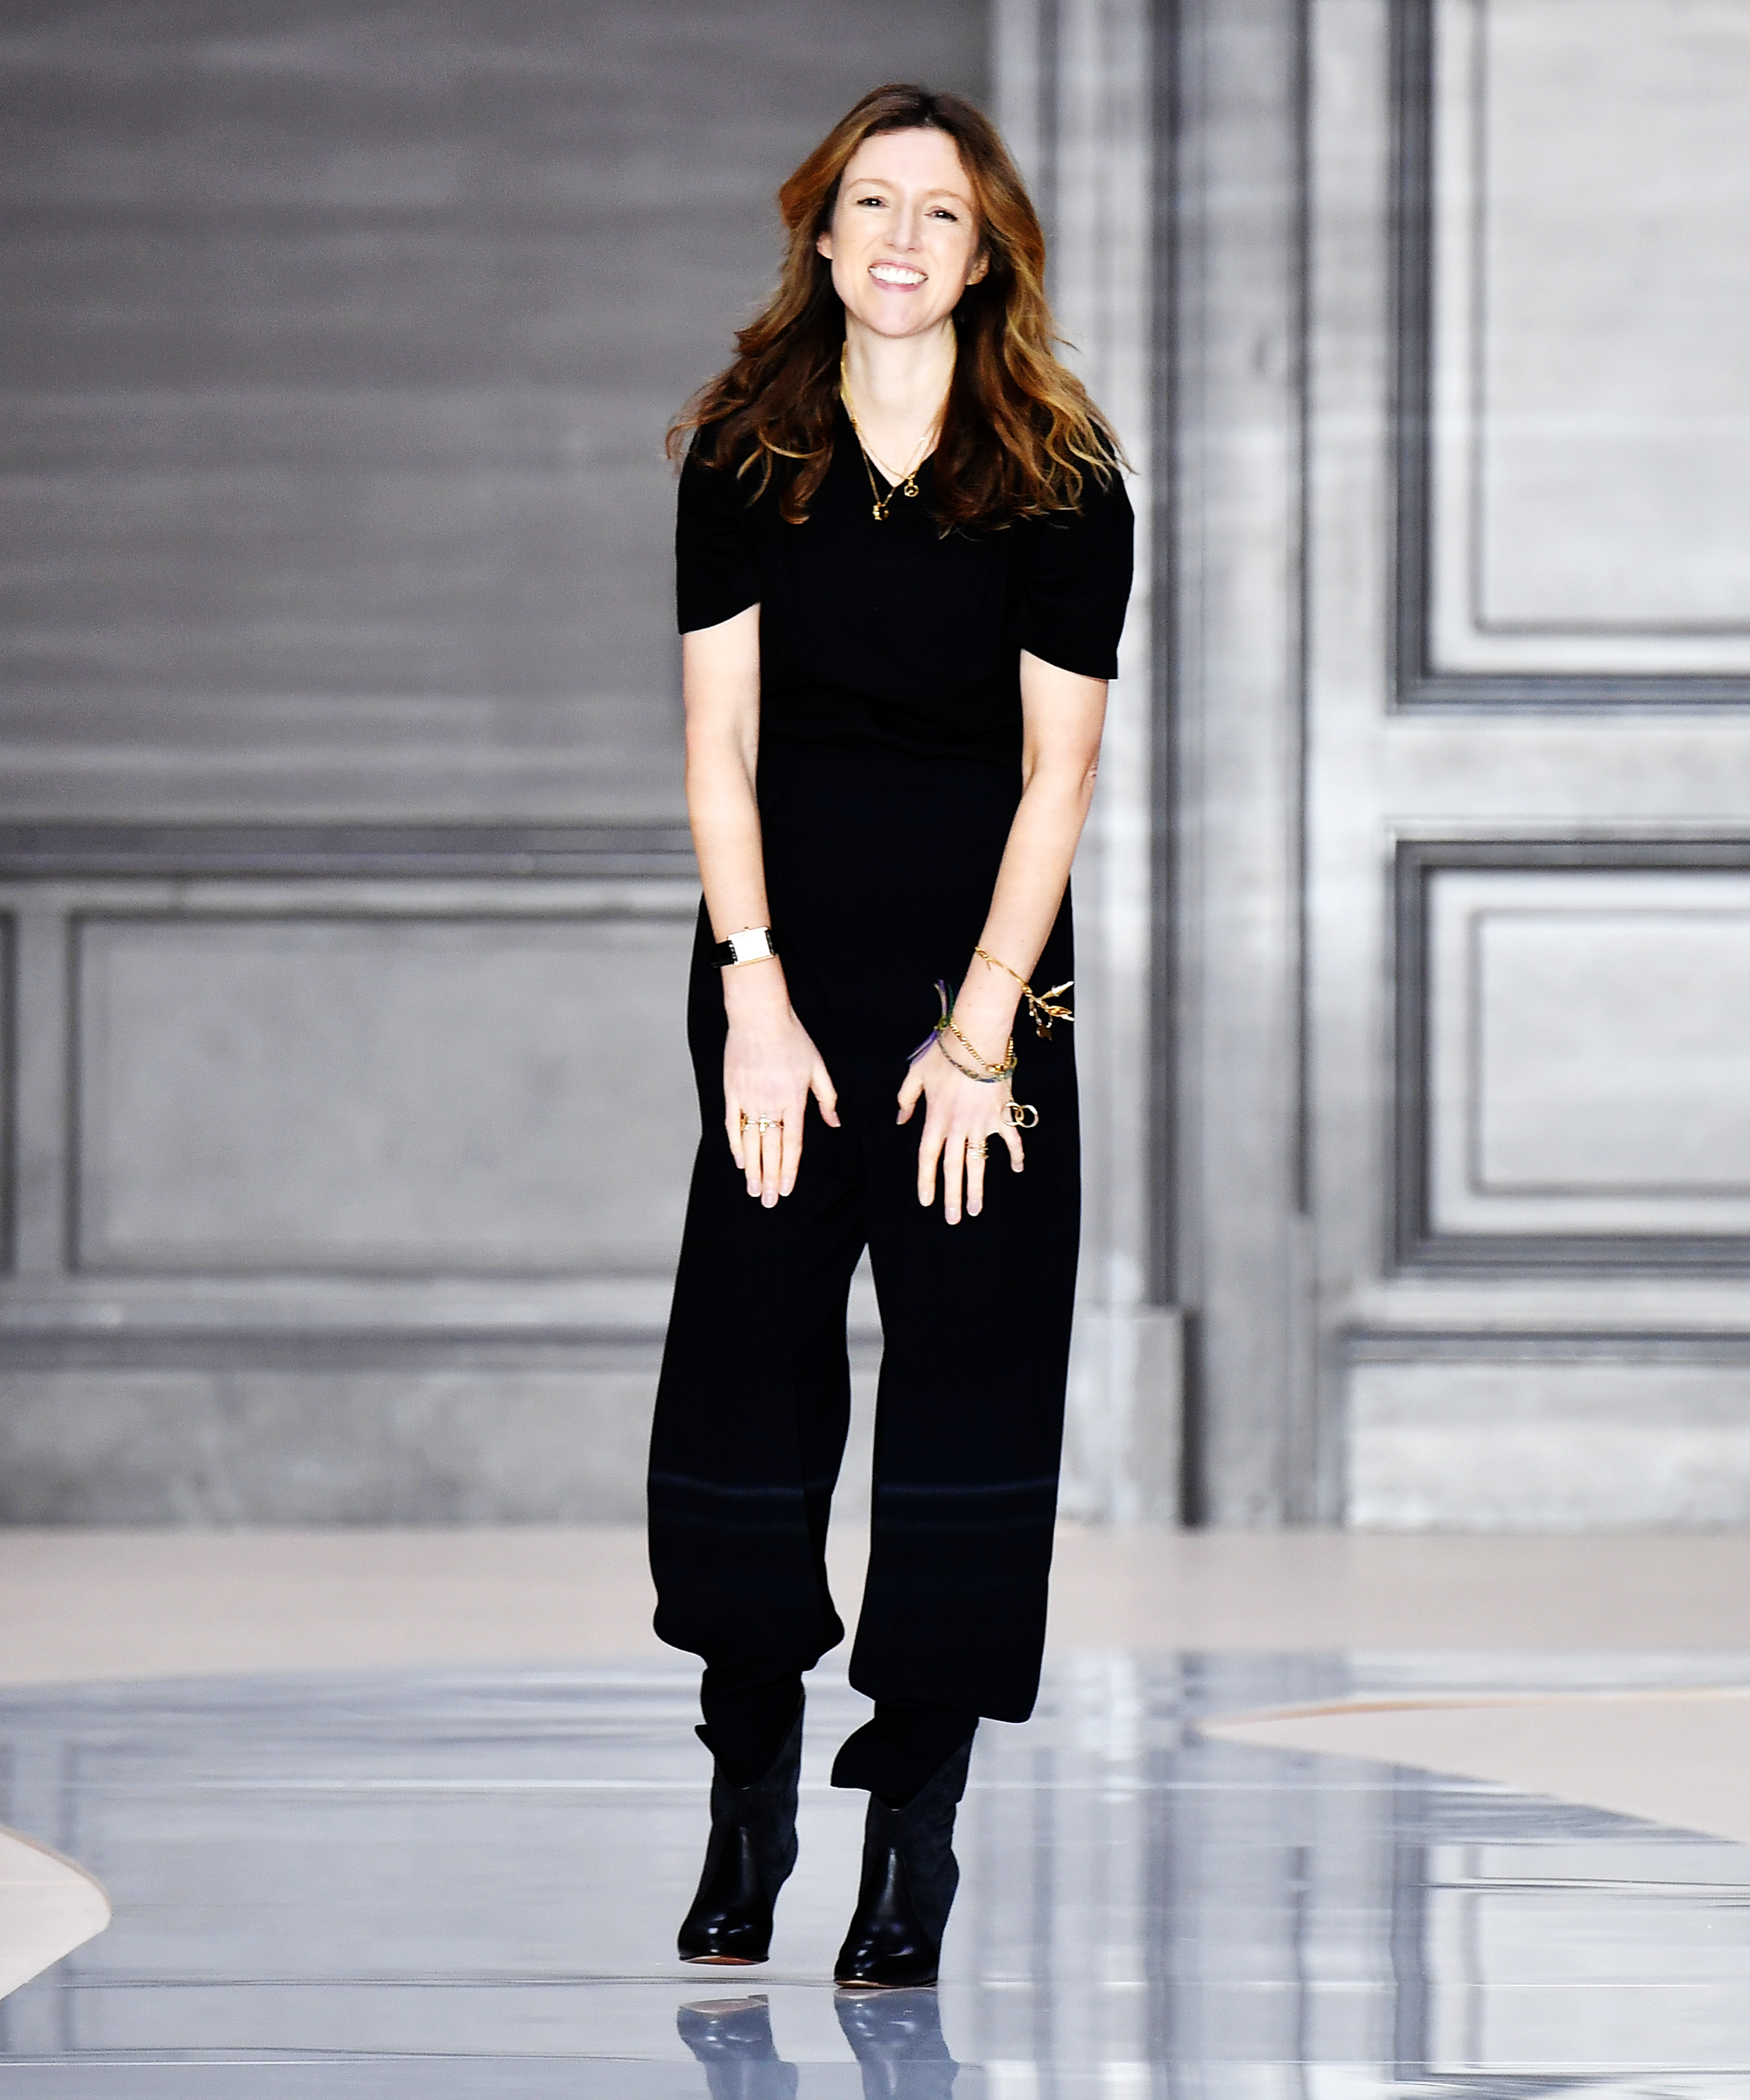 Givenchy Appoints Clare Waight Keller as Artistic Director